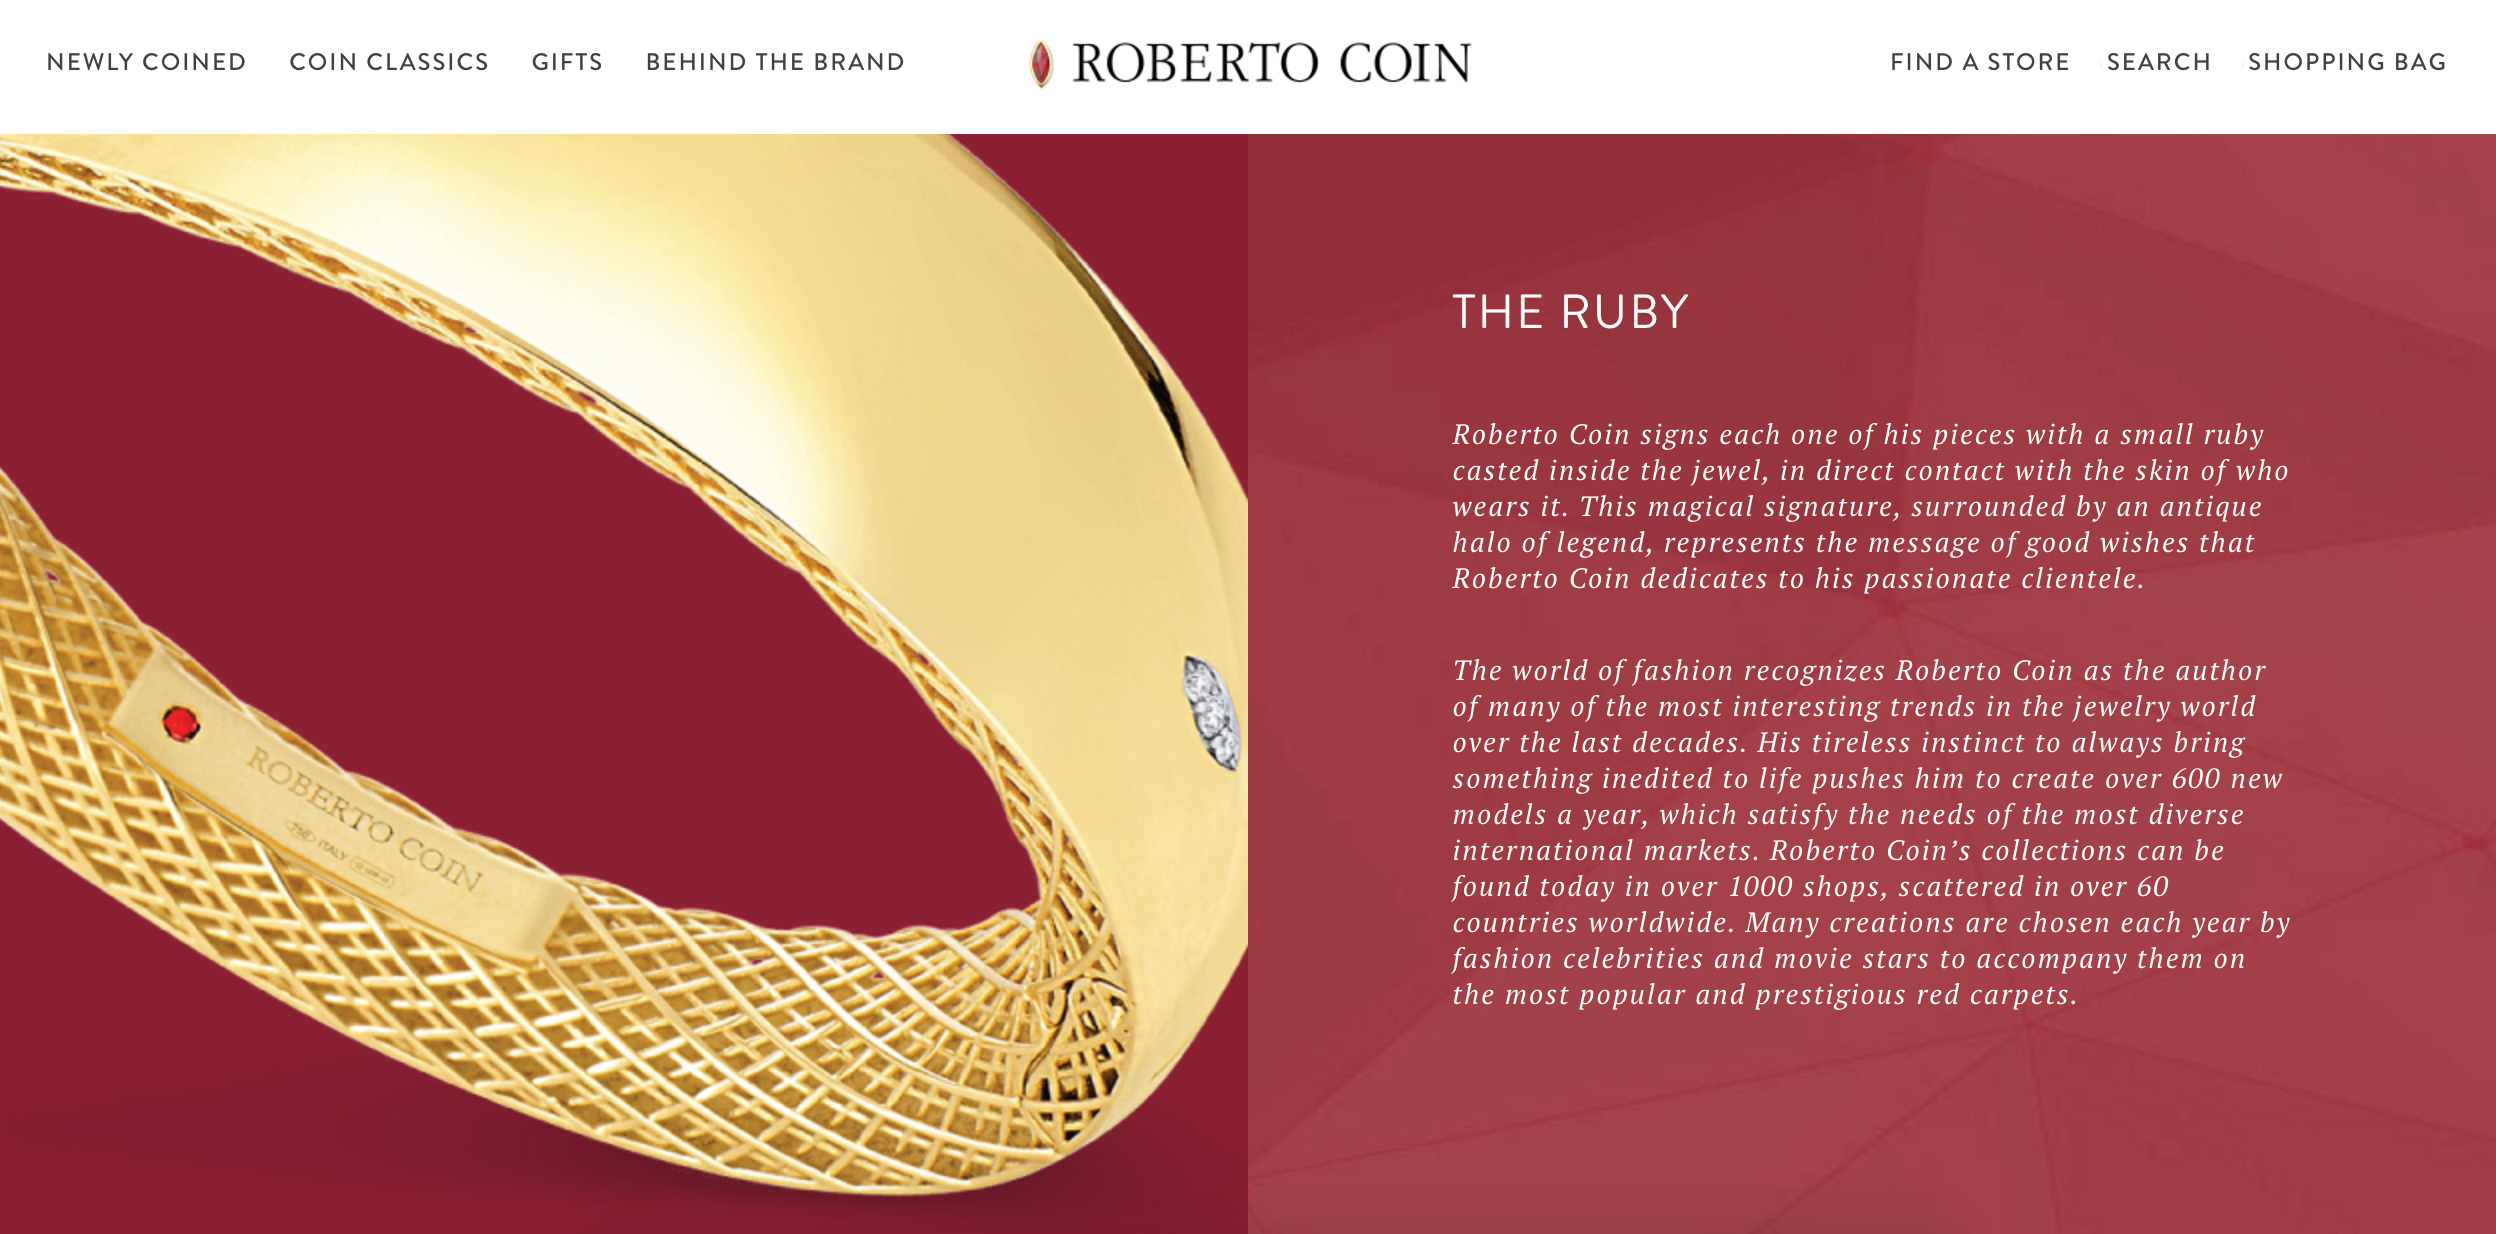 Another example of a brand's story being told on a page, this one via Roberto Coin and the story of their little rubies.